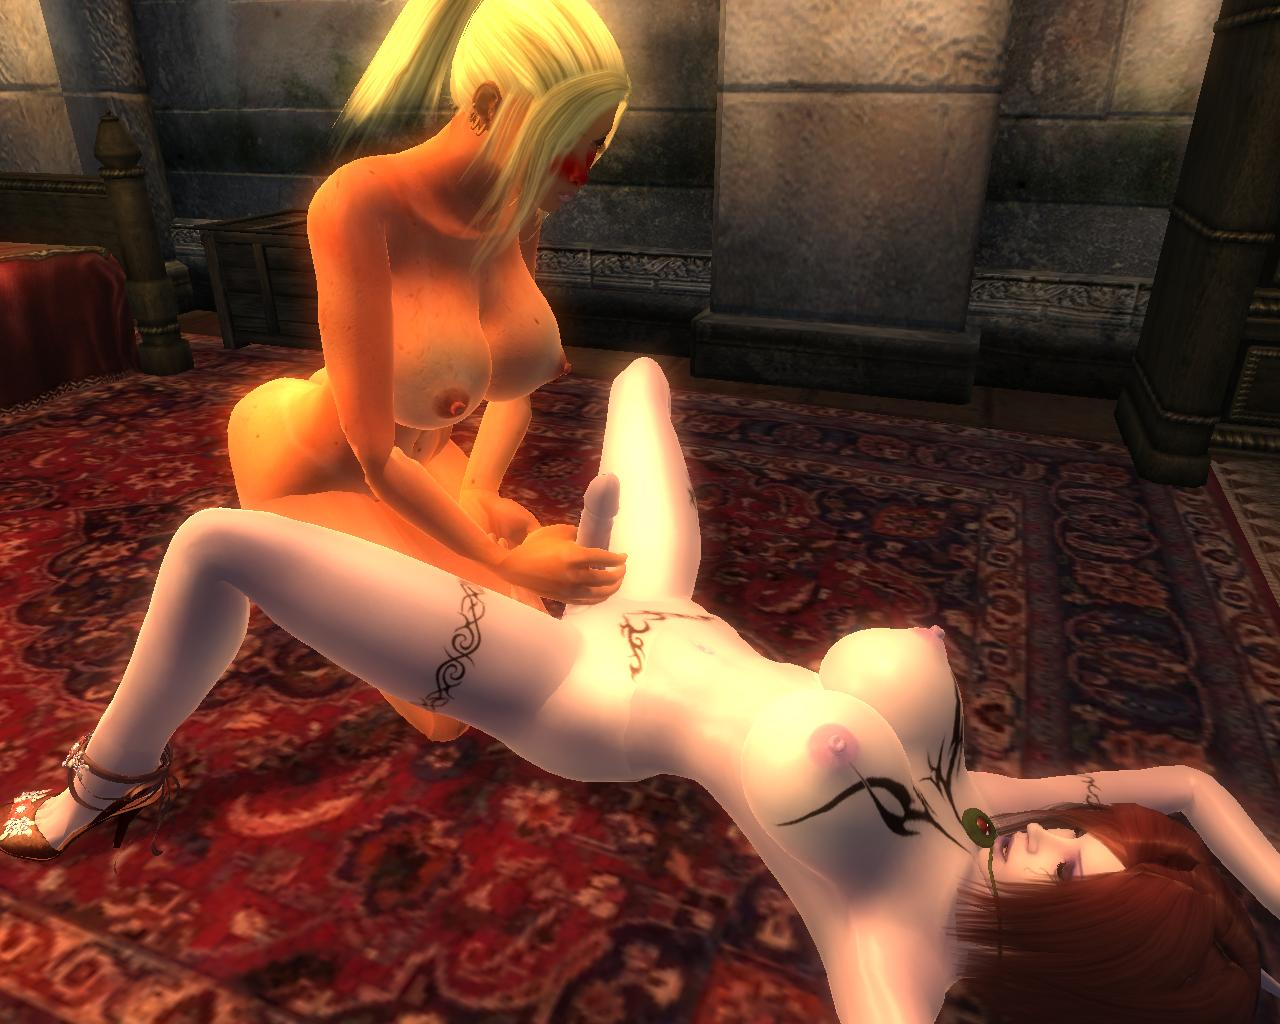 Thrust fuck elf girl sexy download